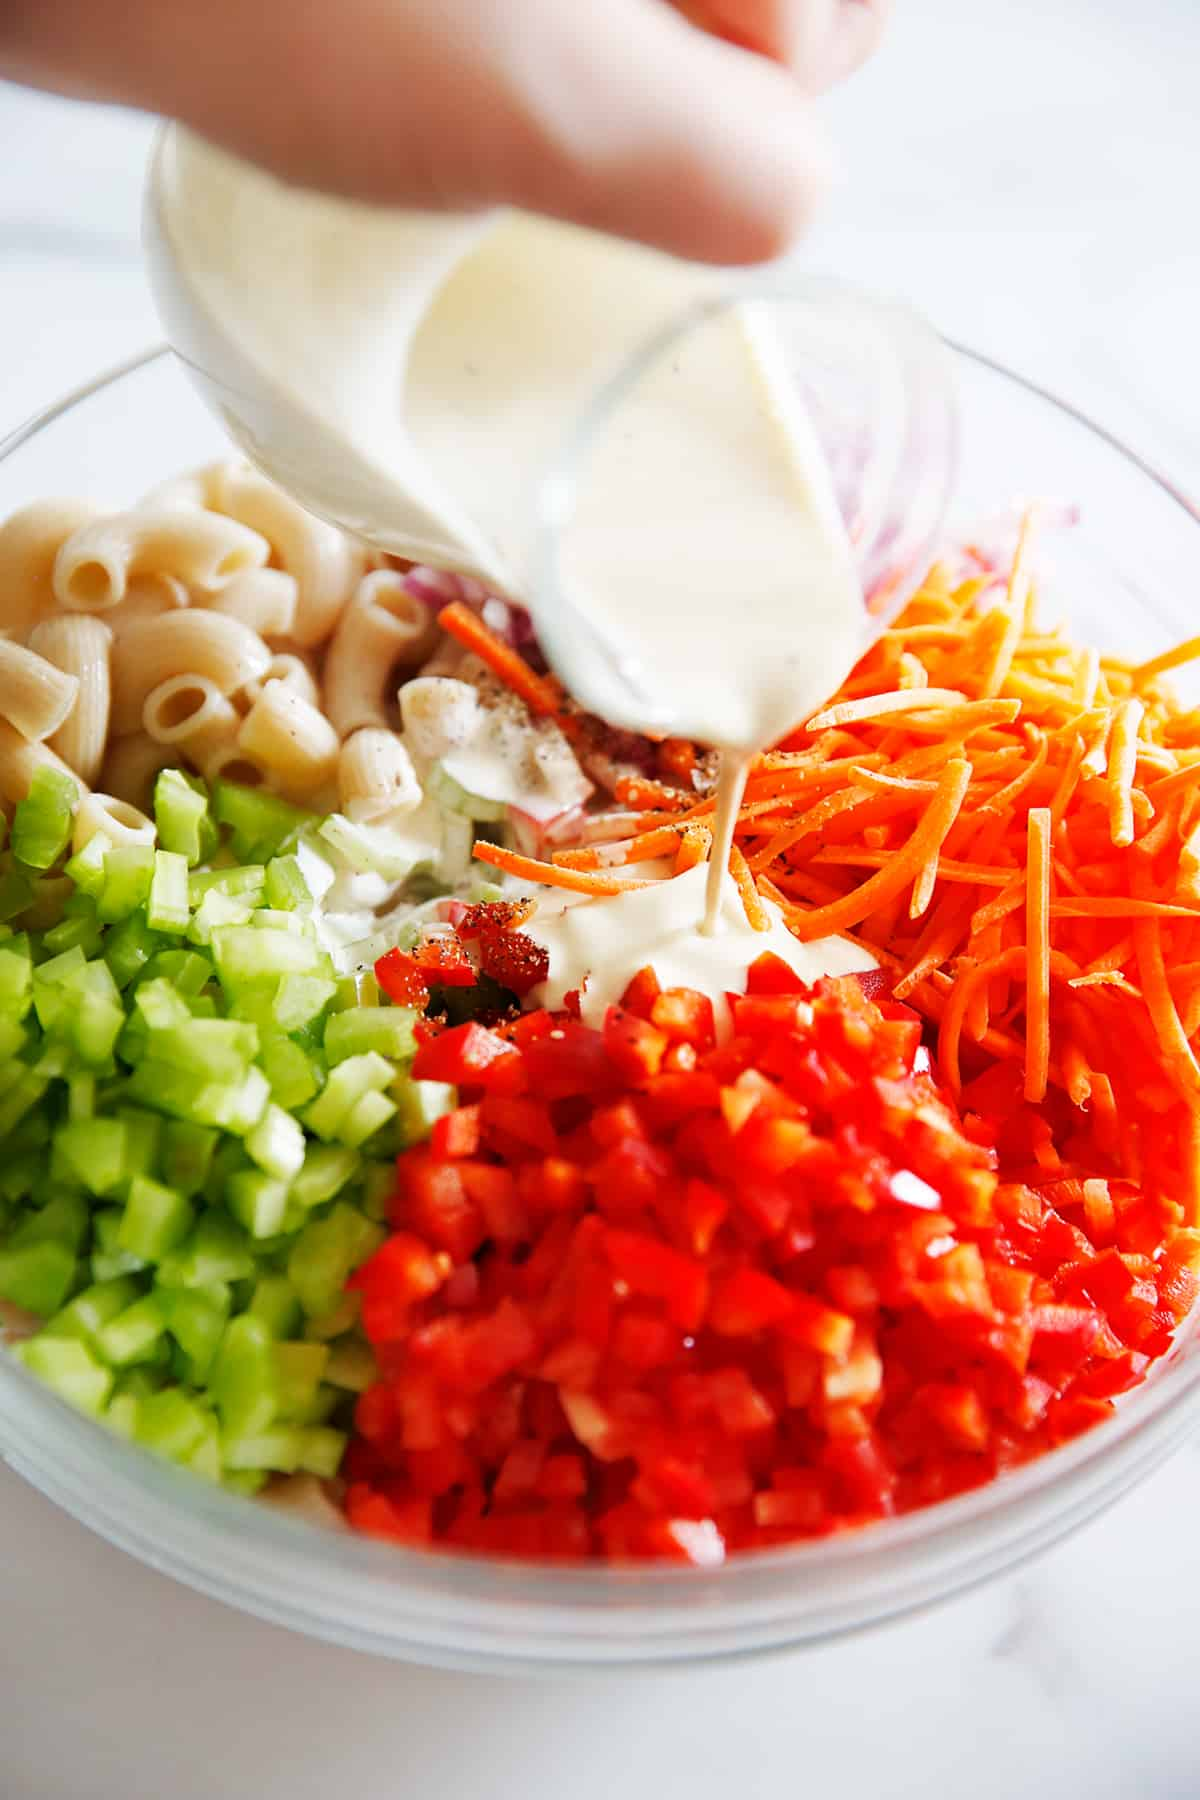 How to make macaroni salad